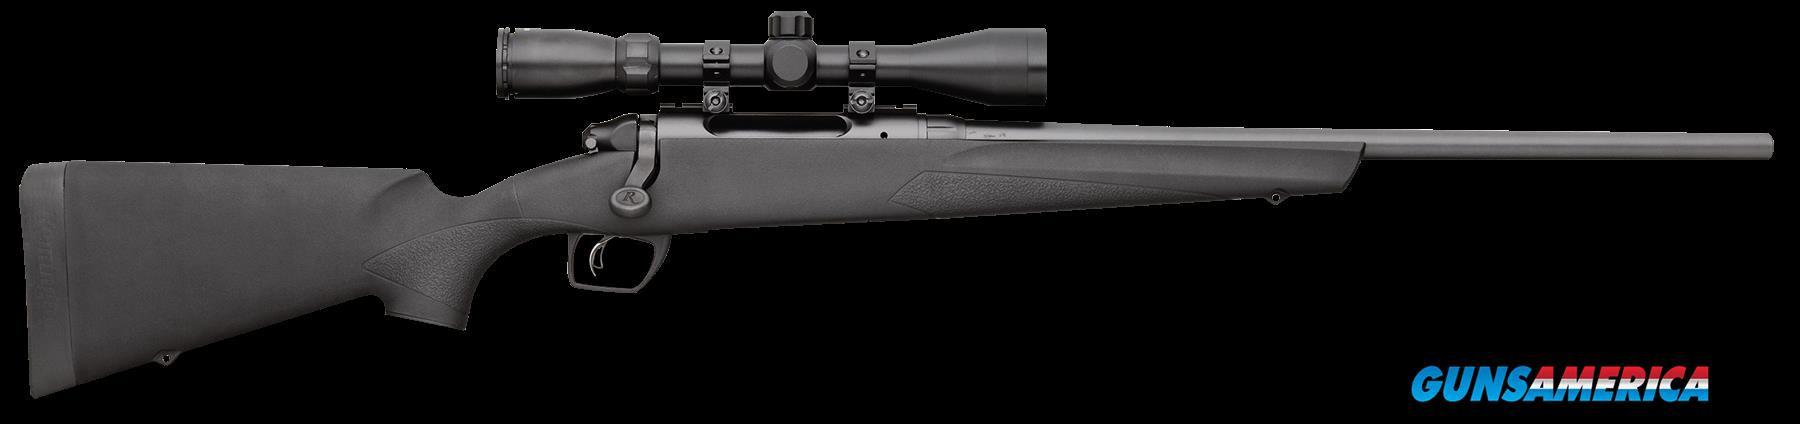 "Remington Firearms 85848 783 with Scope Bolt 7mm Remington Magnum 24"" 3+1 Synthetic Black Stk Black  Guns > Rifles > R Misc Rifles"